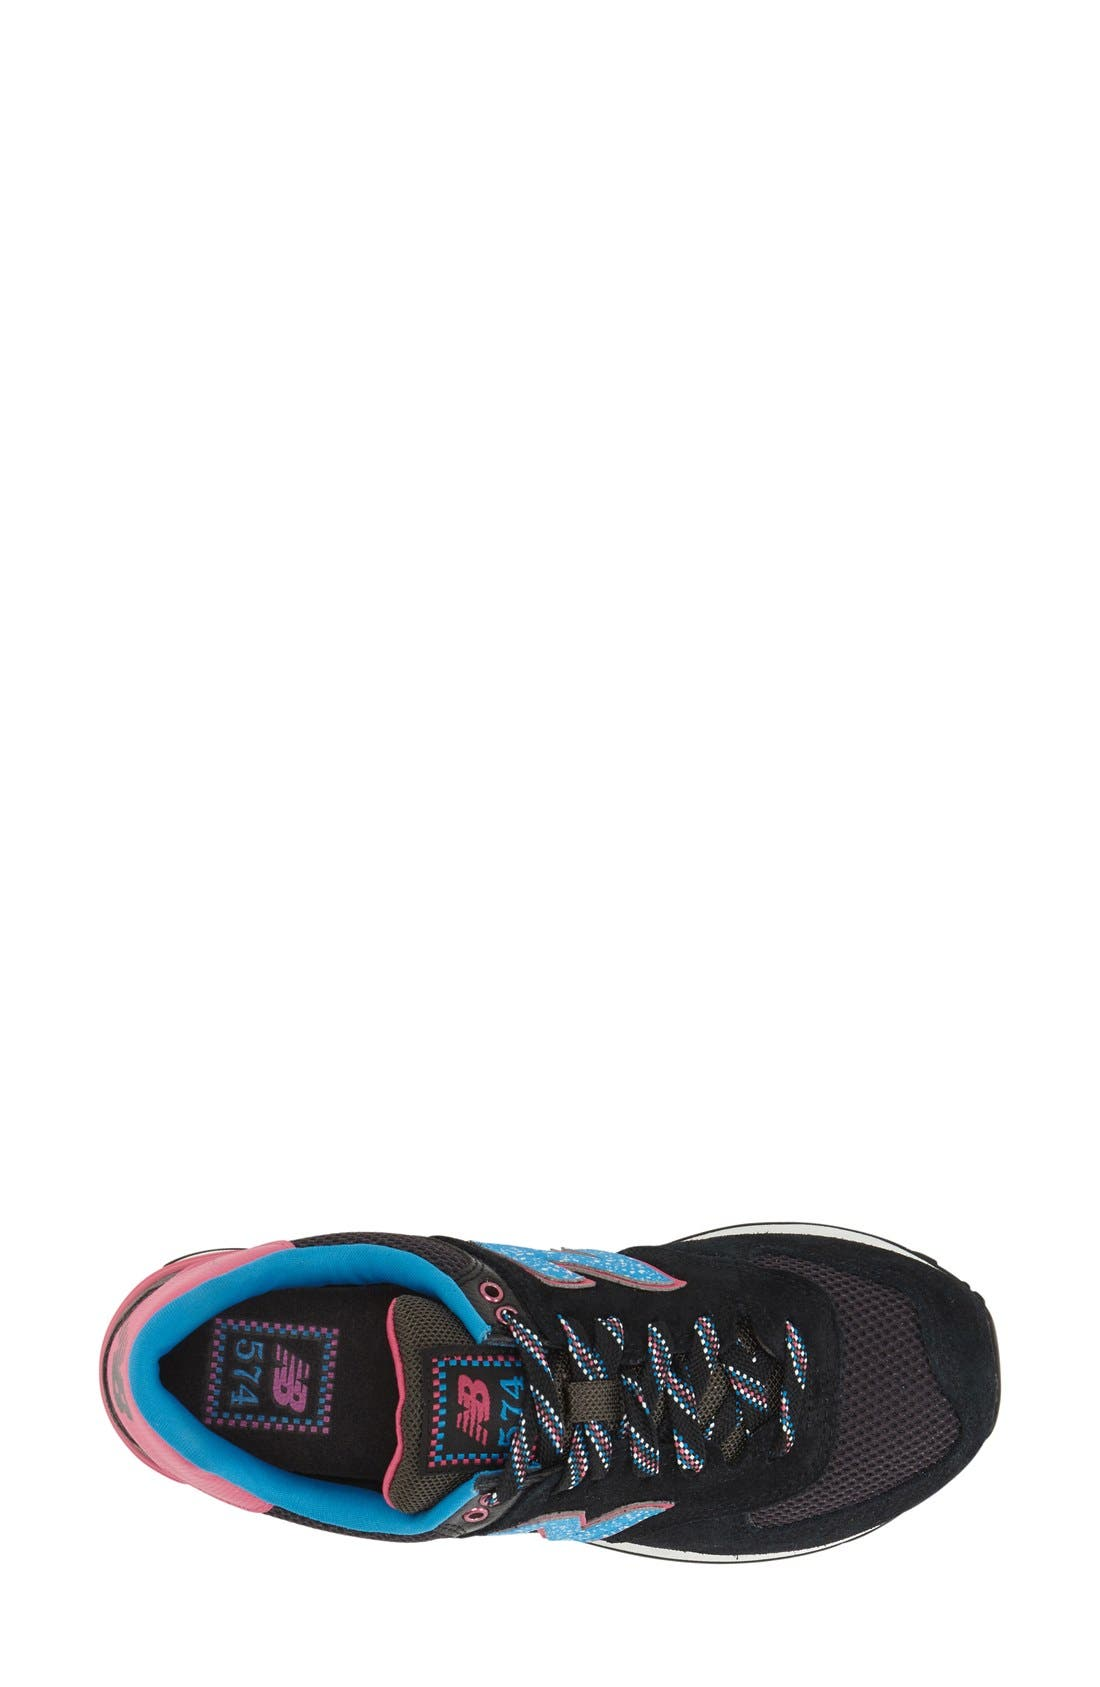 '574' Sneaker,                             Alternate thumbnail 3, color,                             Black/ Blue